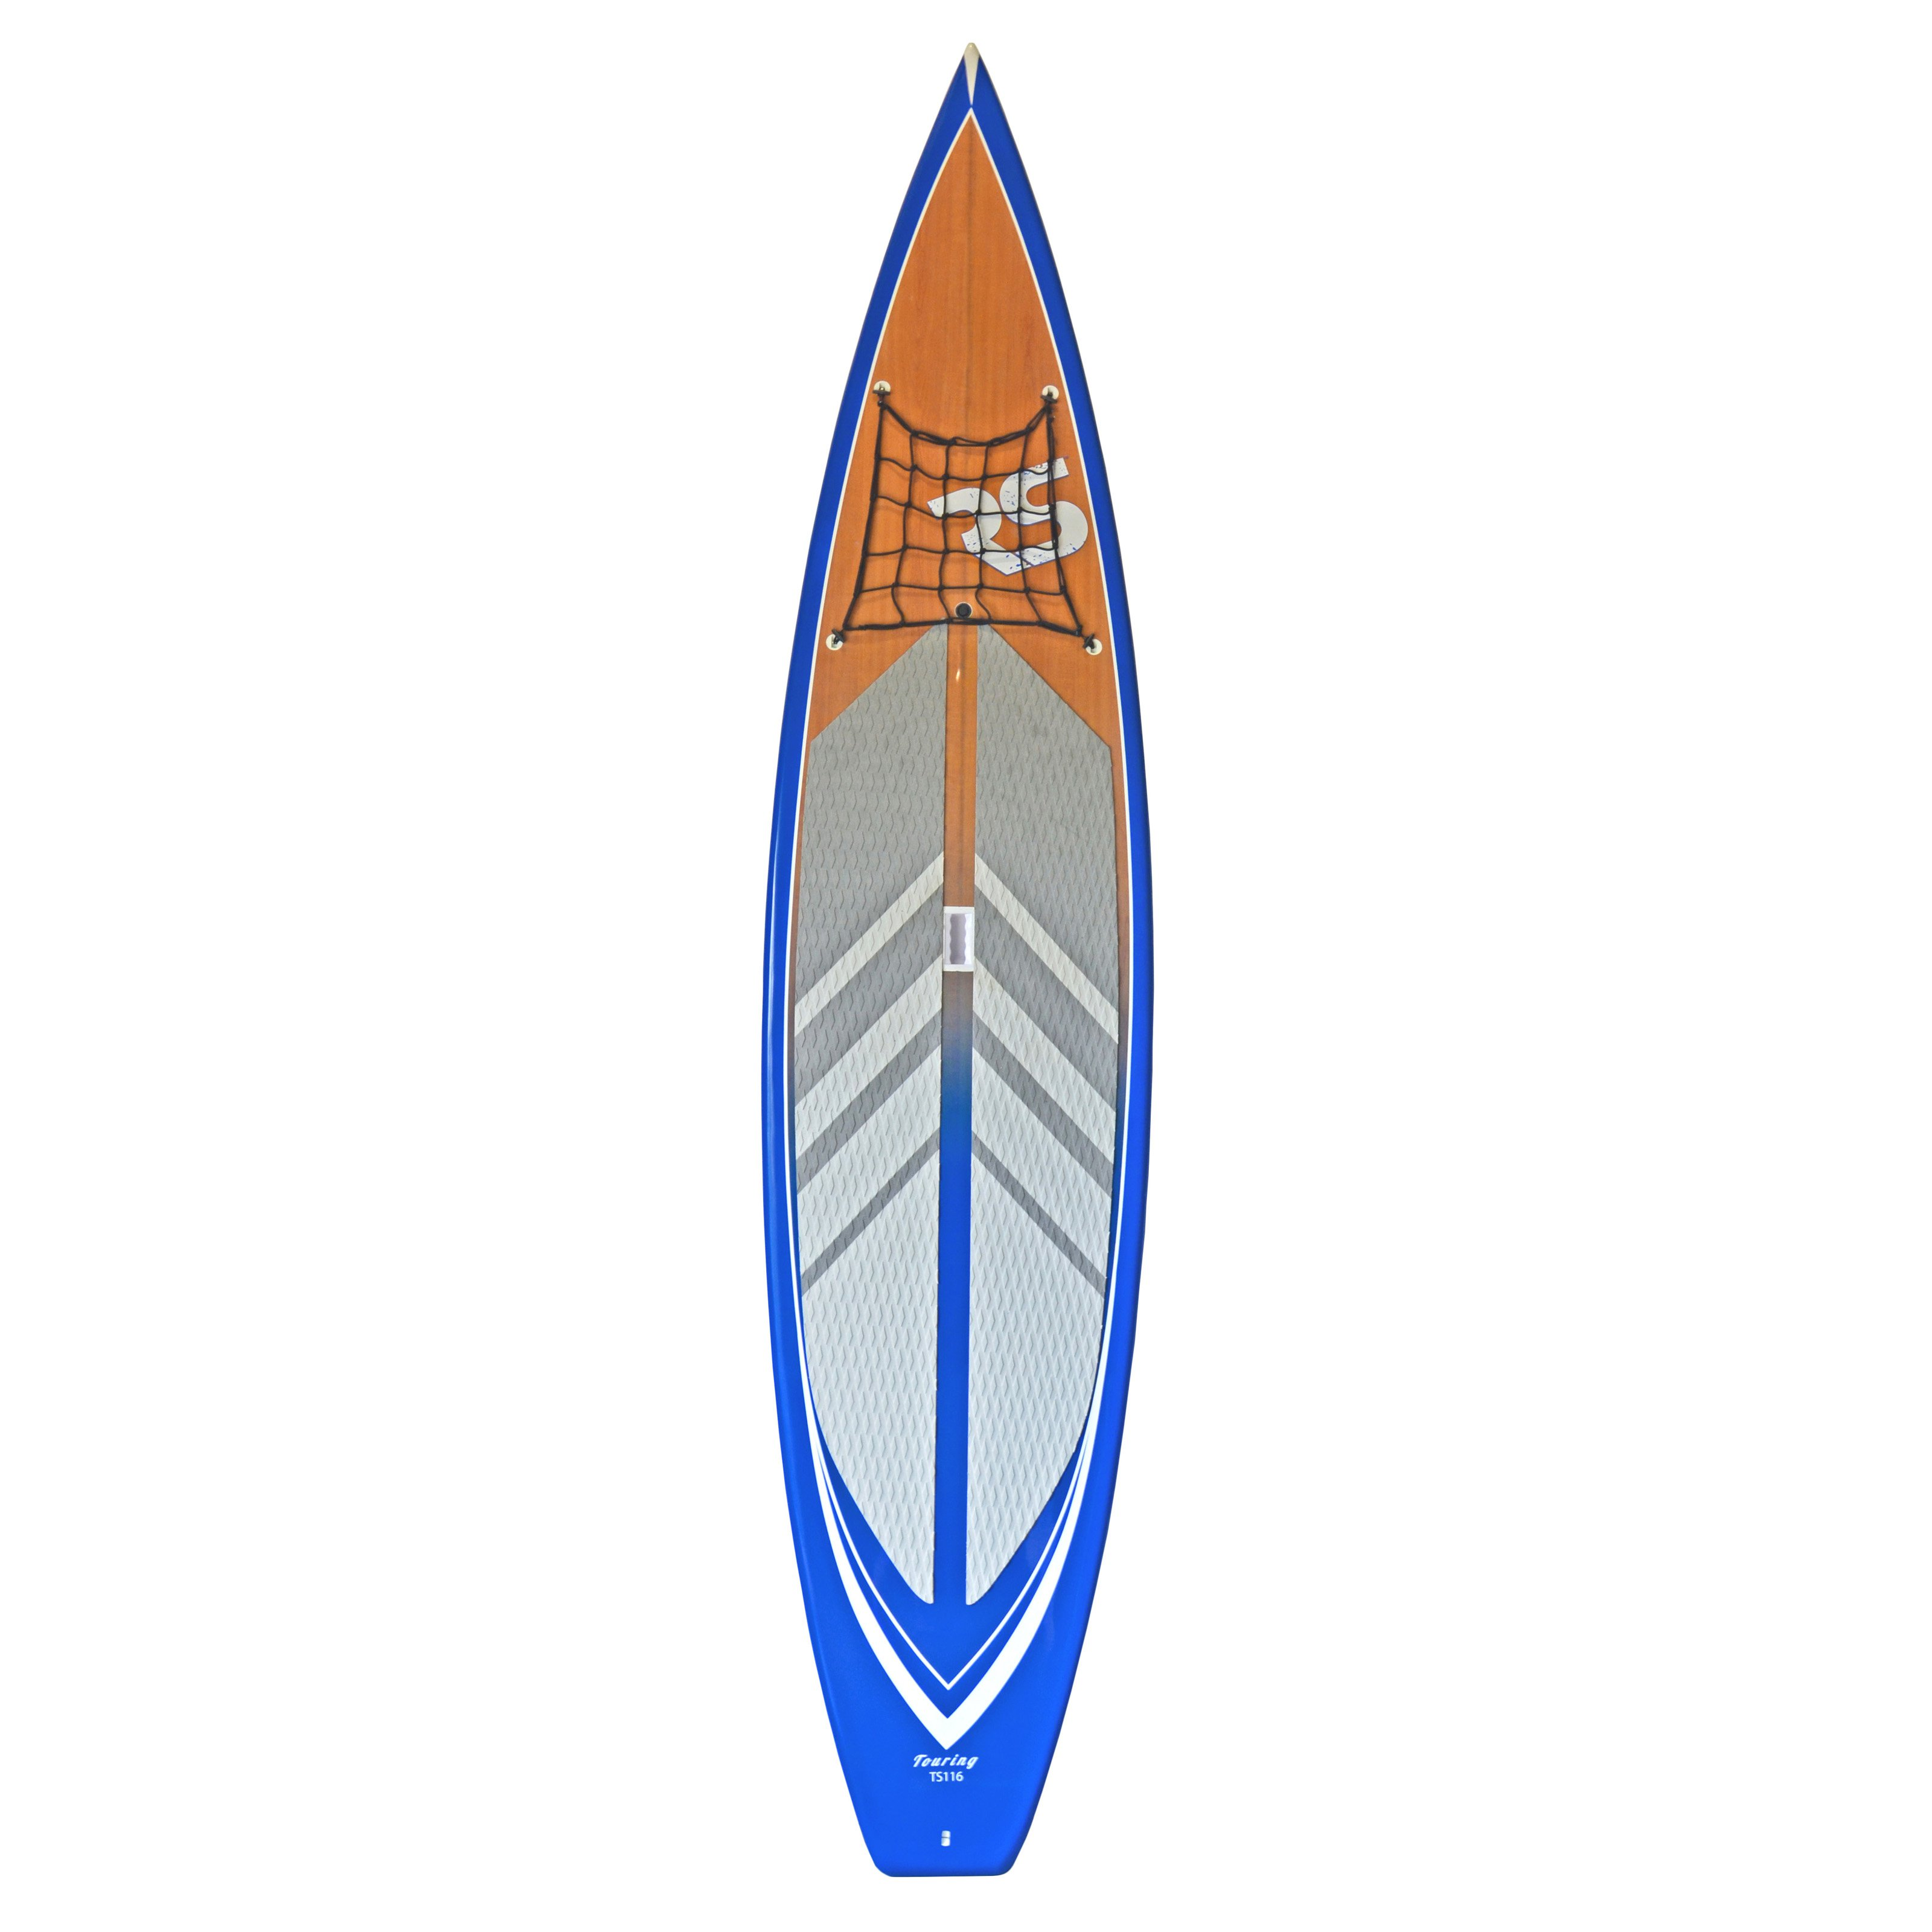 Rave Sports Touring SUP TS116 Stand Up Paddle Board